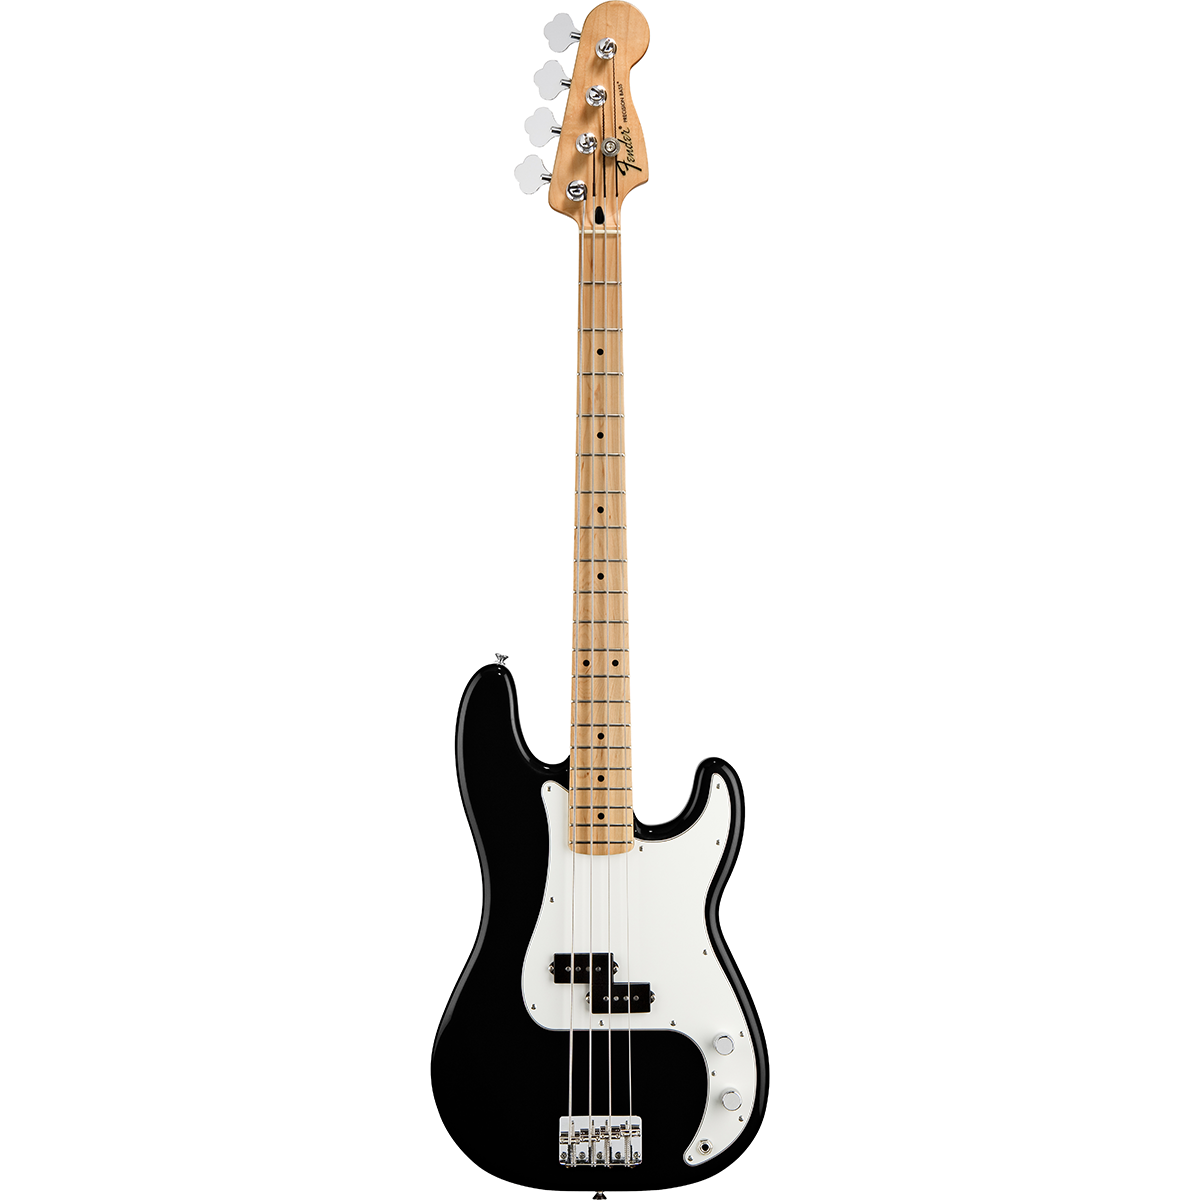 Fender StandardPrecisionBass,MN,BLK el-bas sort